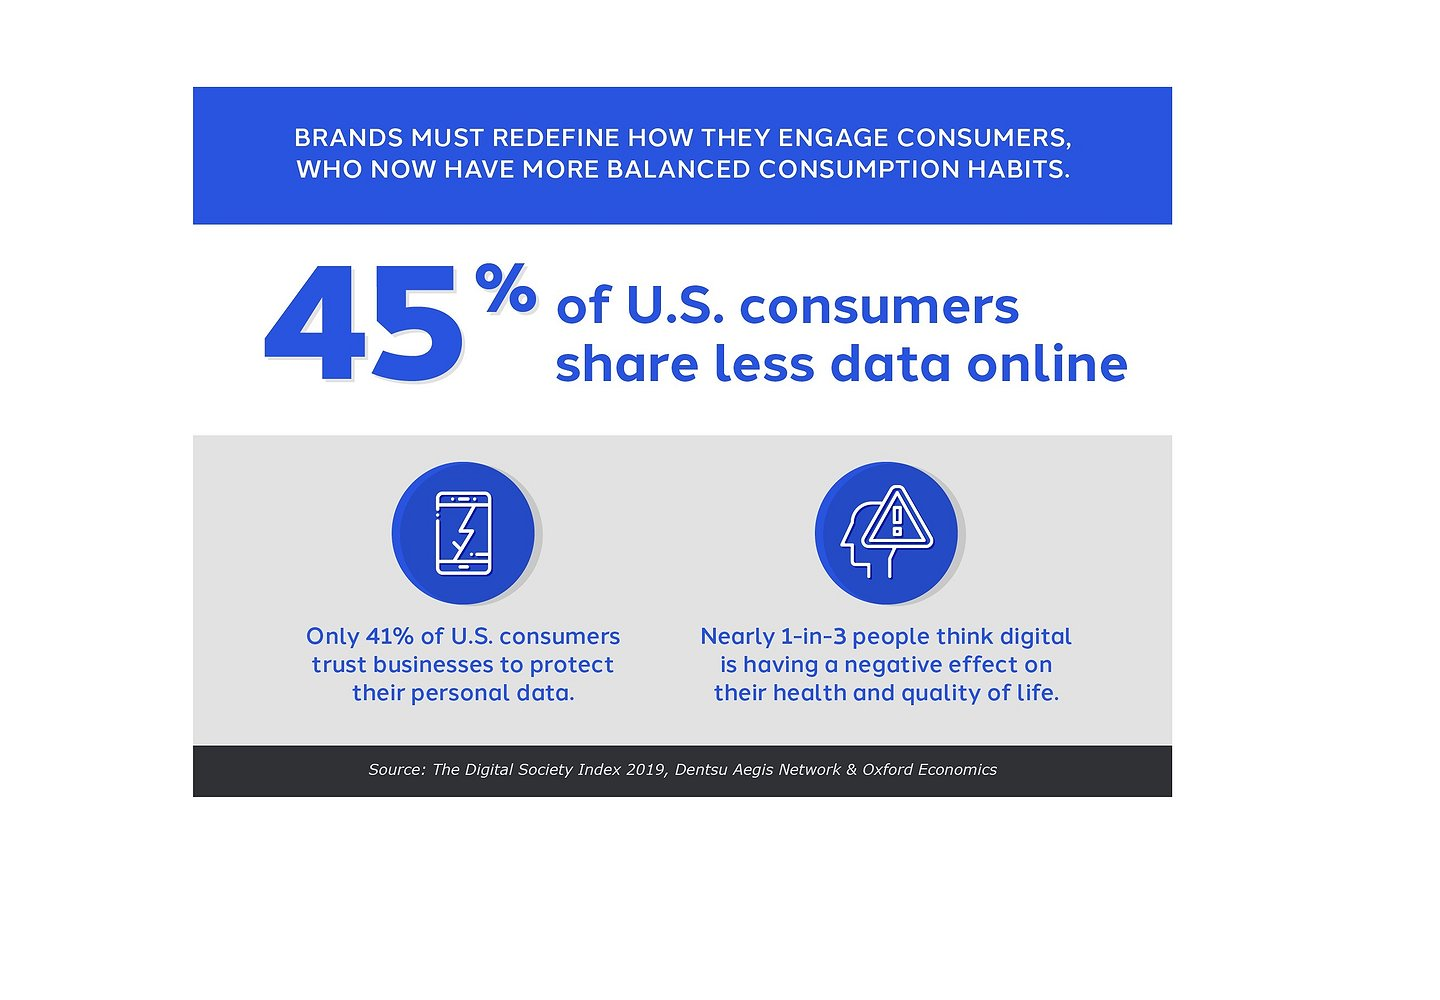 As Marketers Drive Digital and Data Agendas, U.S. Consumer Awareness and Skepticism Increases, With Implications for CMOs: Survey